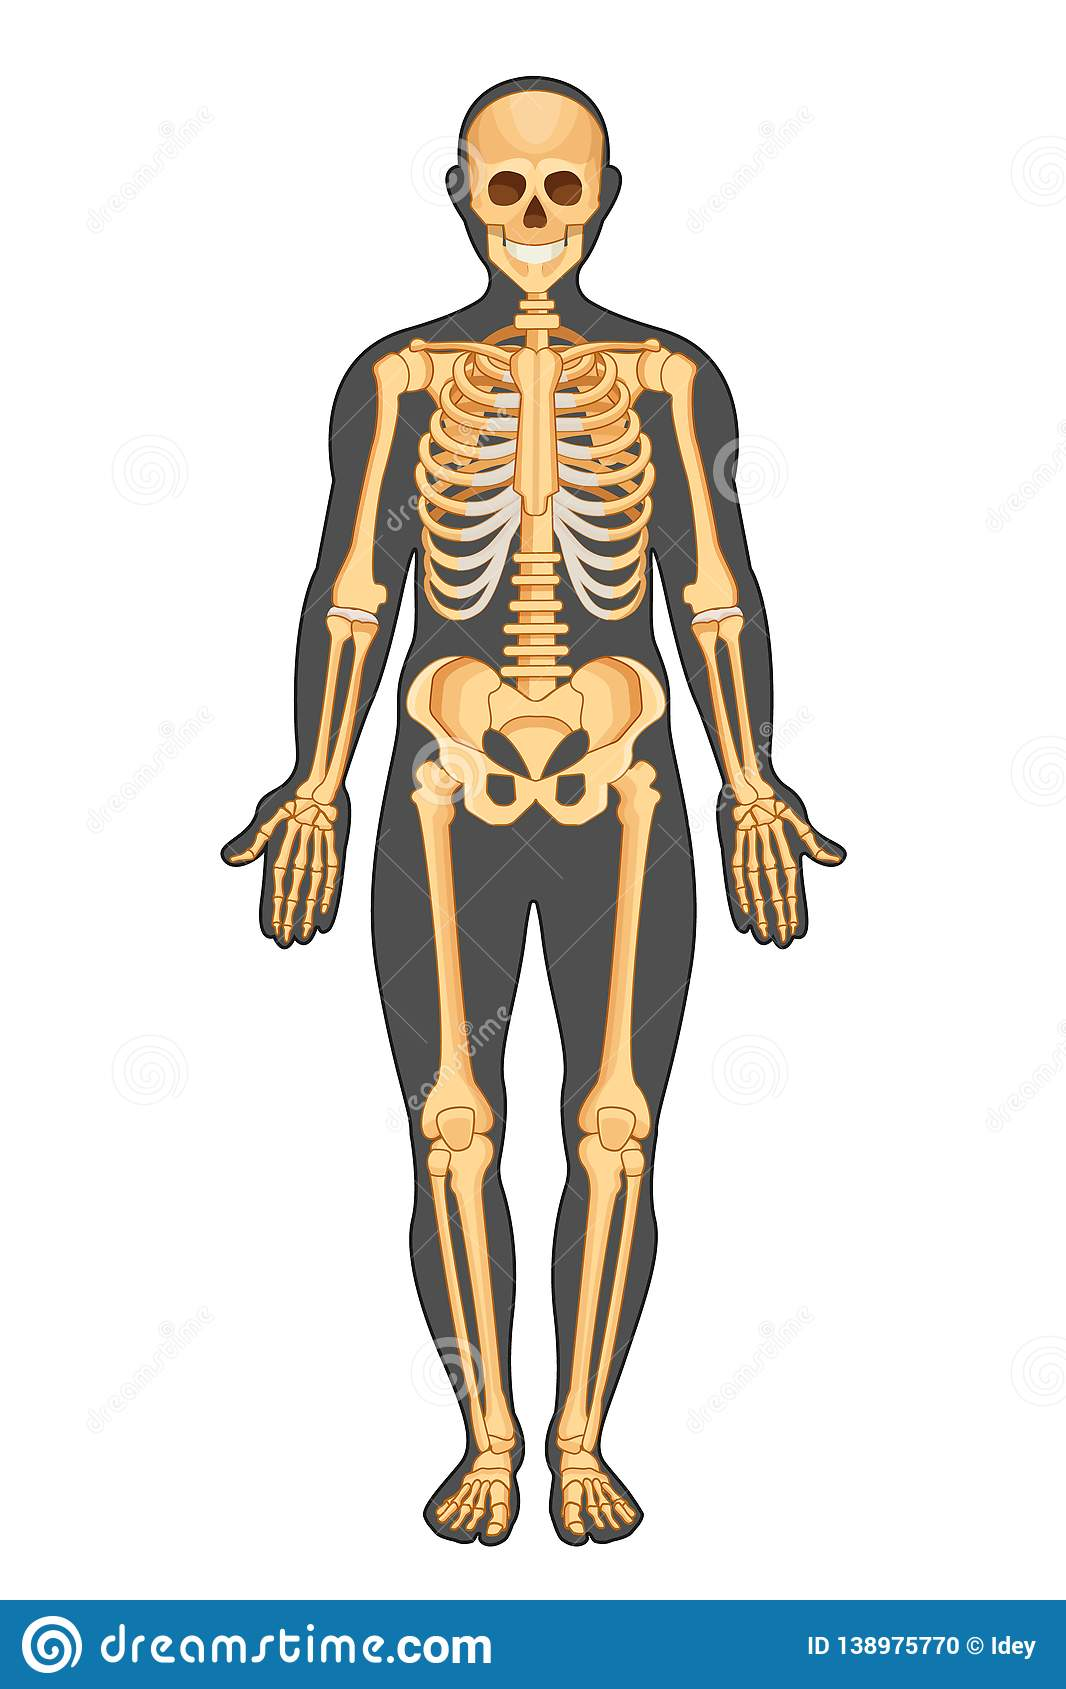 Anatomical Structure Of Human Body Presented In Of Skeleton Stock